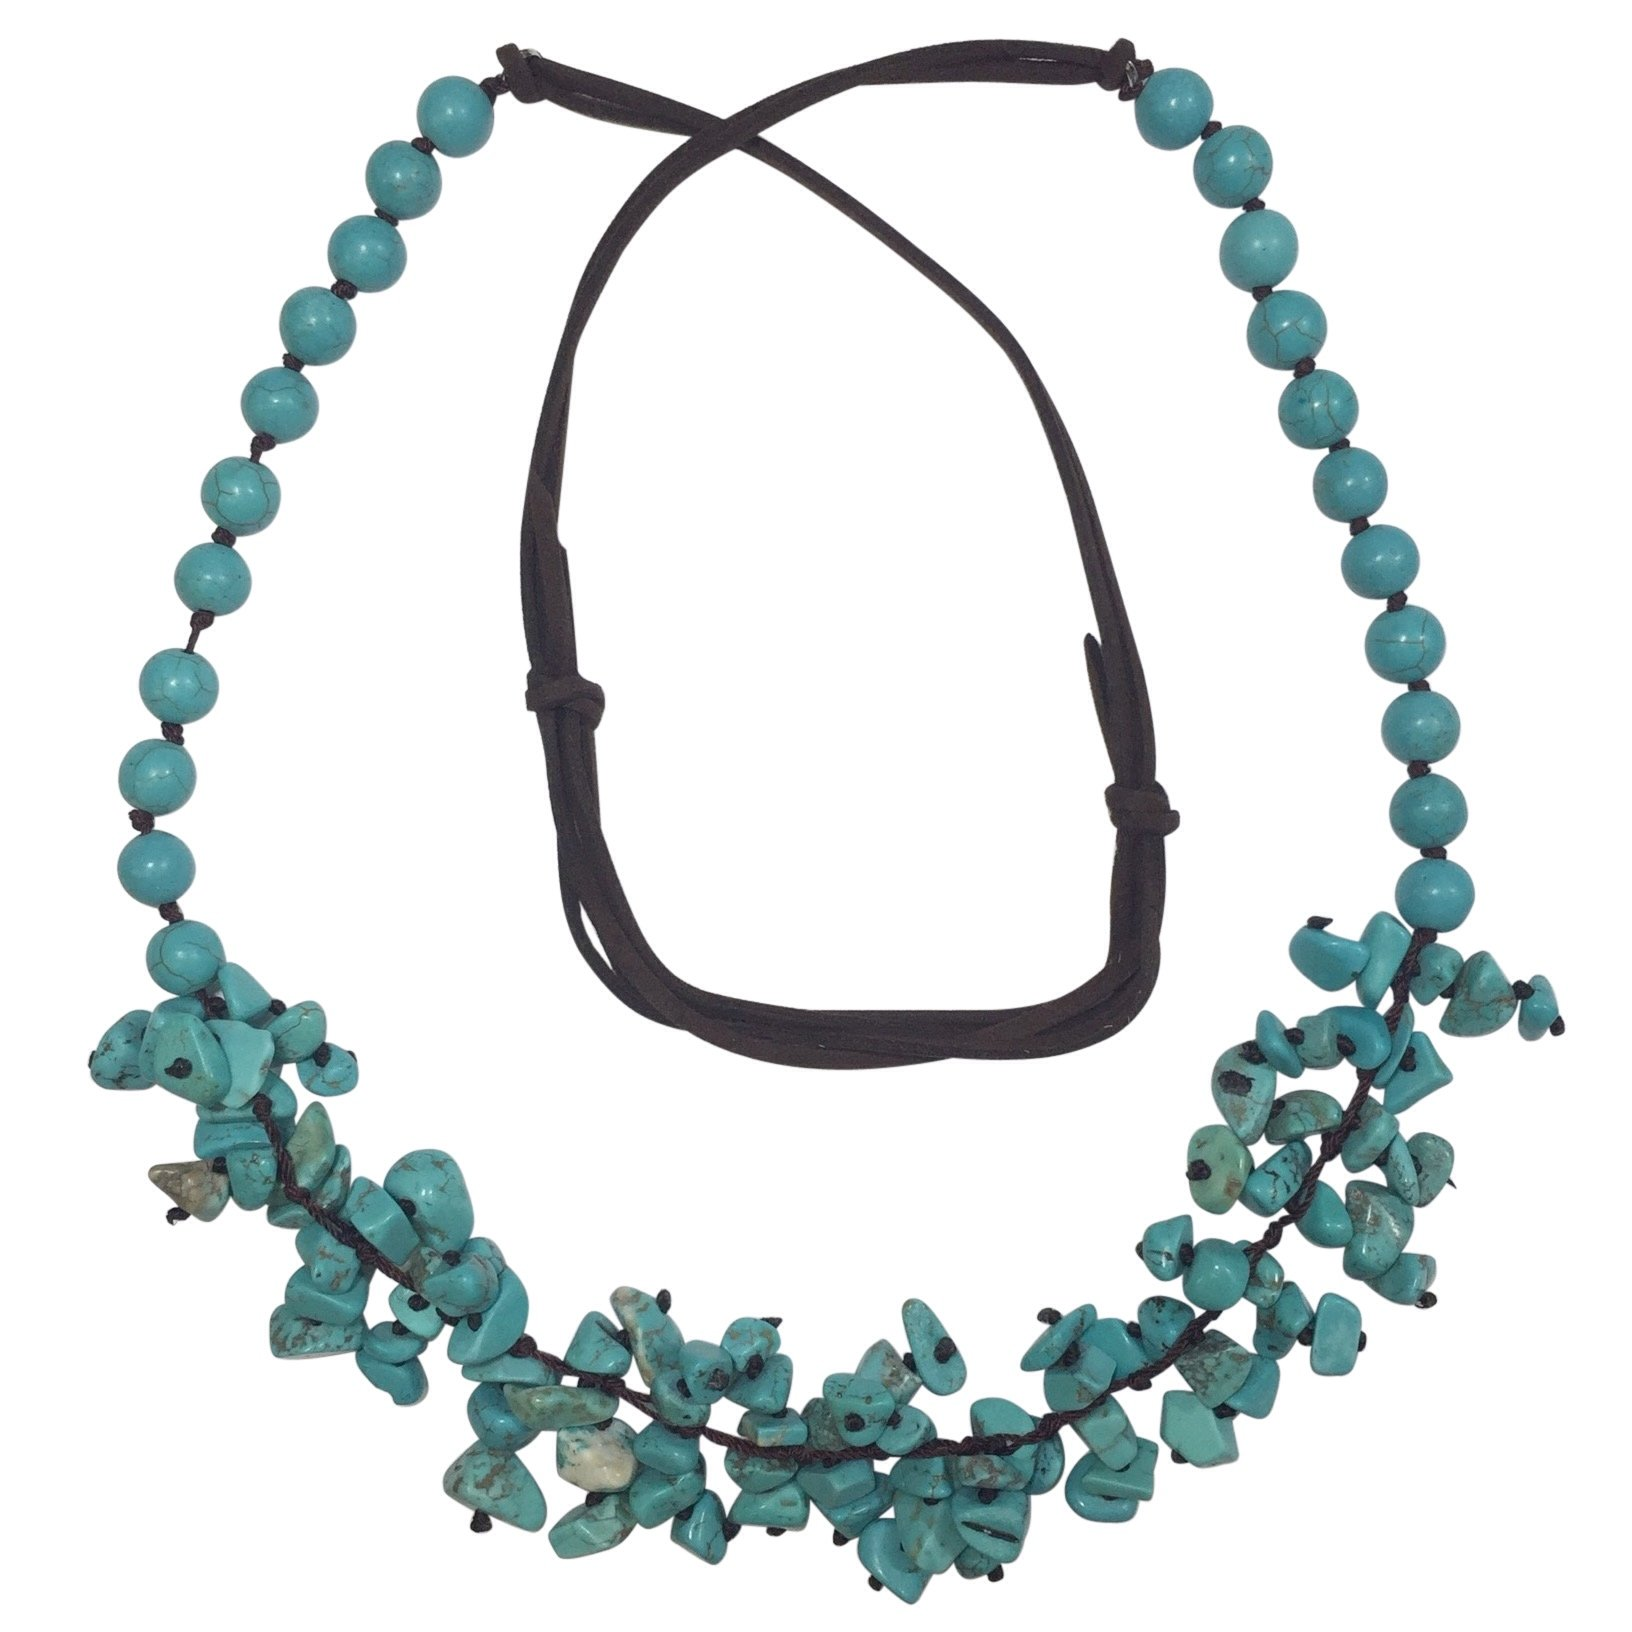 Long Imitation Turquoise Stone Chip Cluster Beaded Brown Cord Necklace by Gypsy Jewels